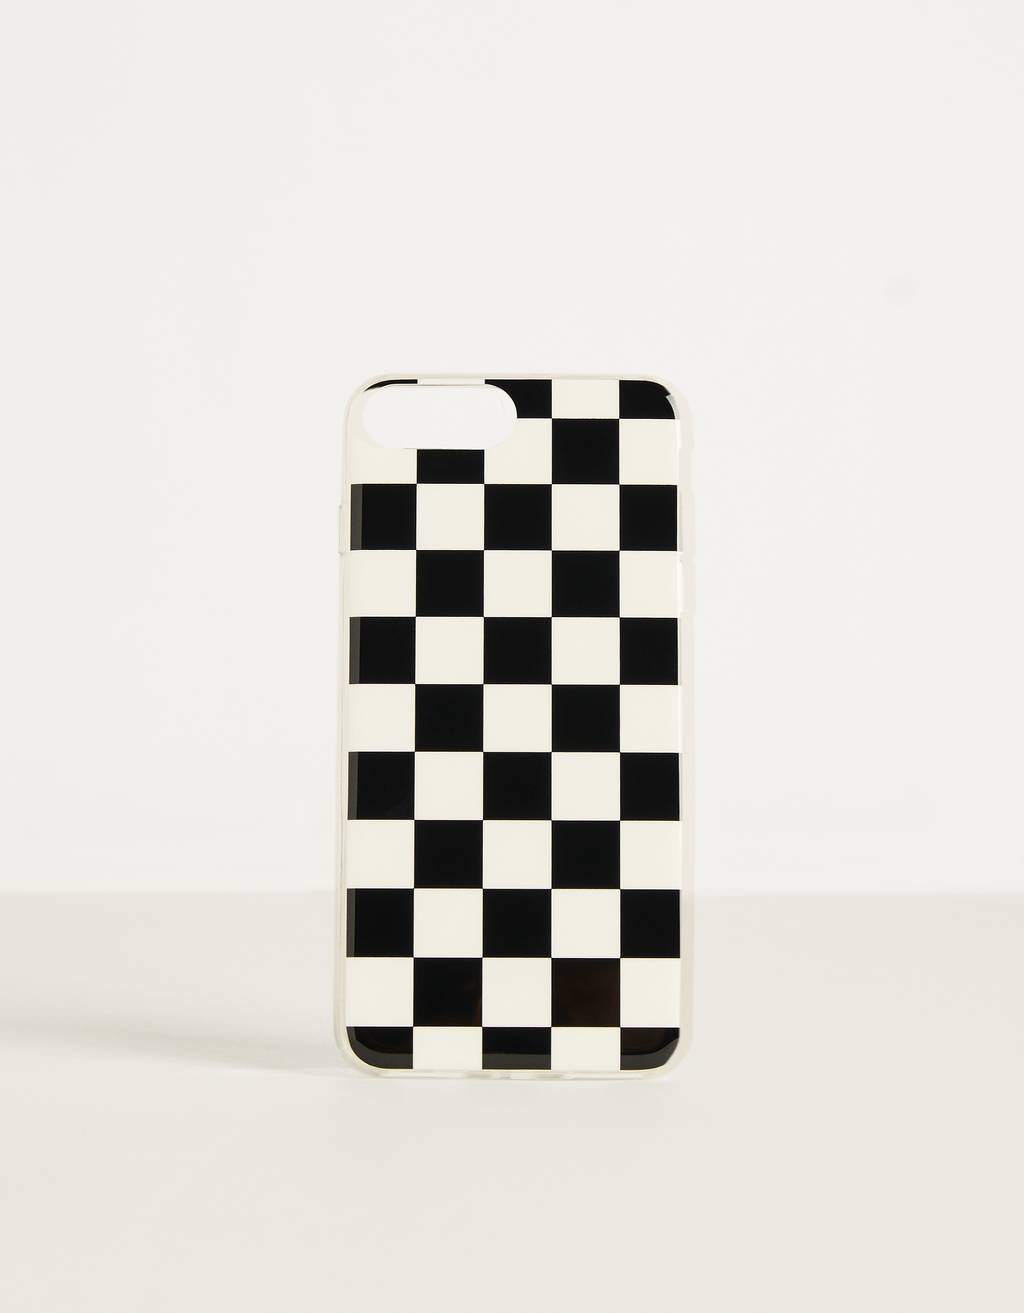 Checked iPhone 6 Plus / 7 Plus / 8 Plus case